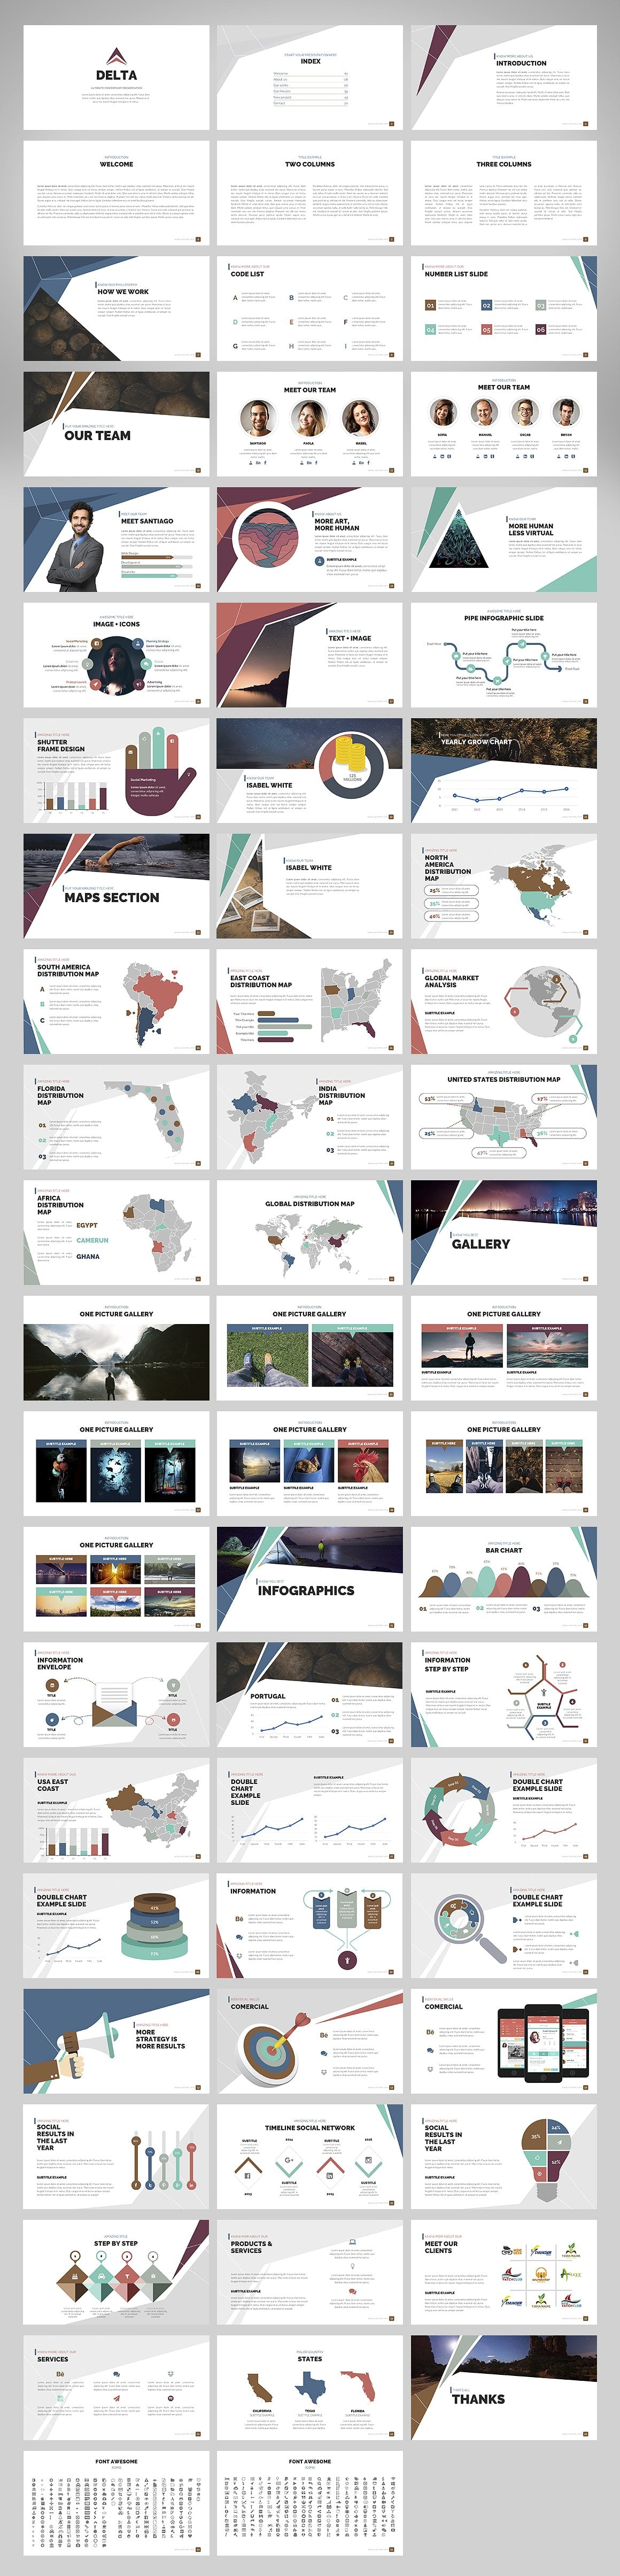 20 Powerpoint Templates with 81% OFF - Delta 02